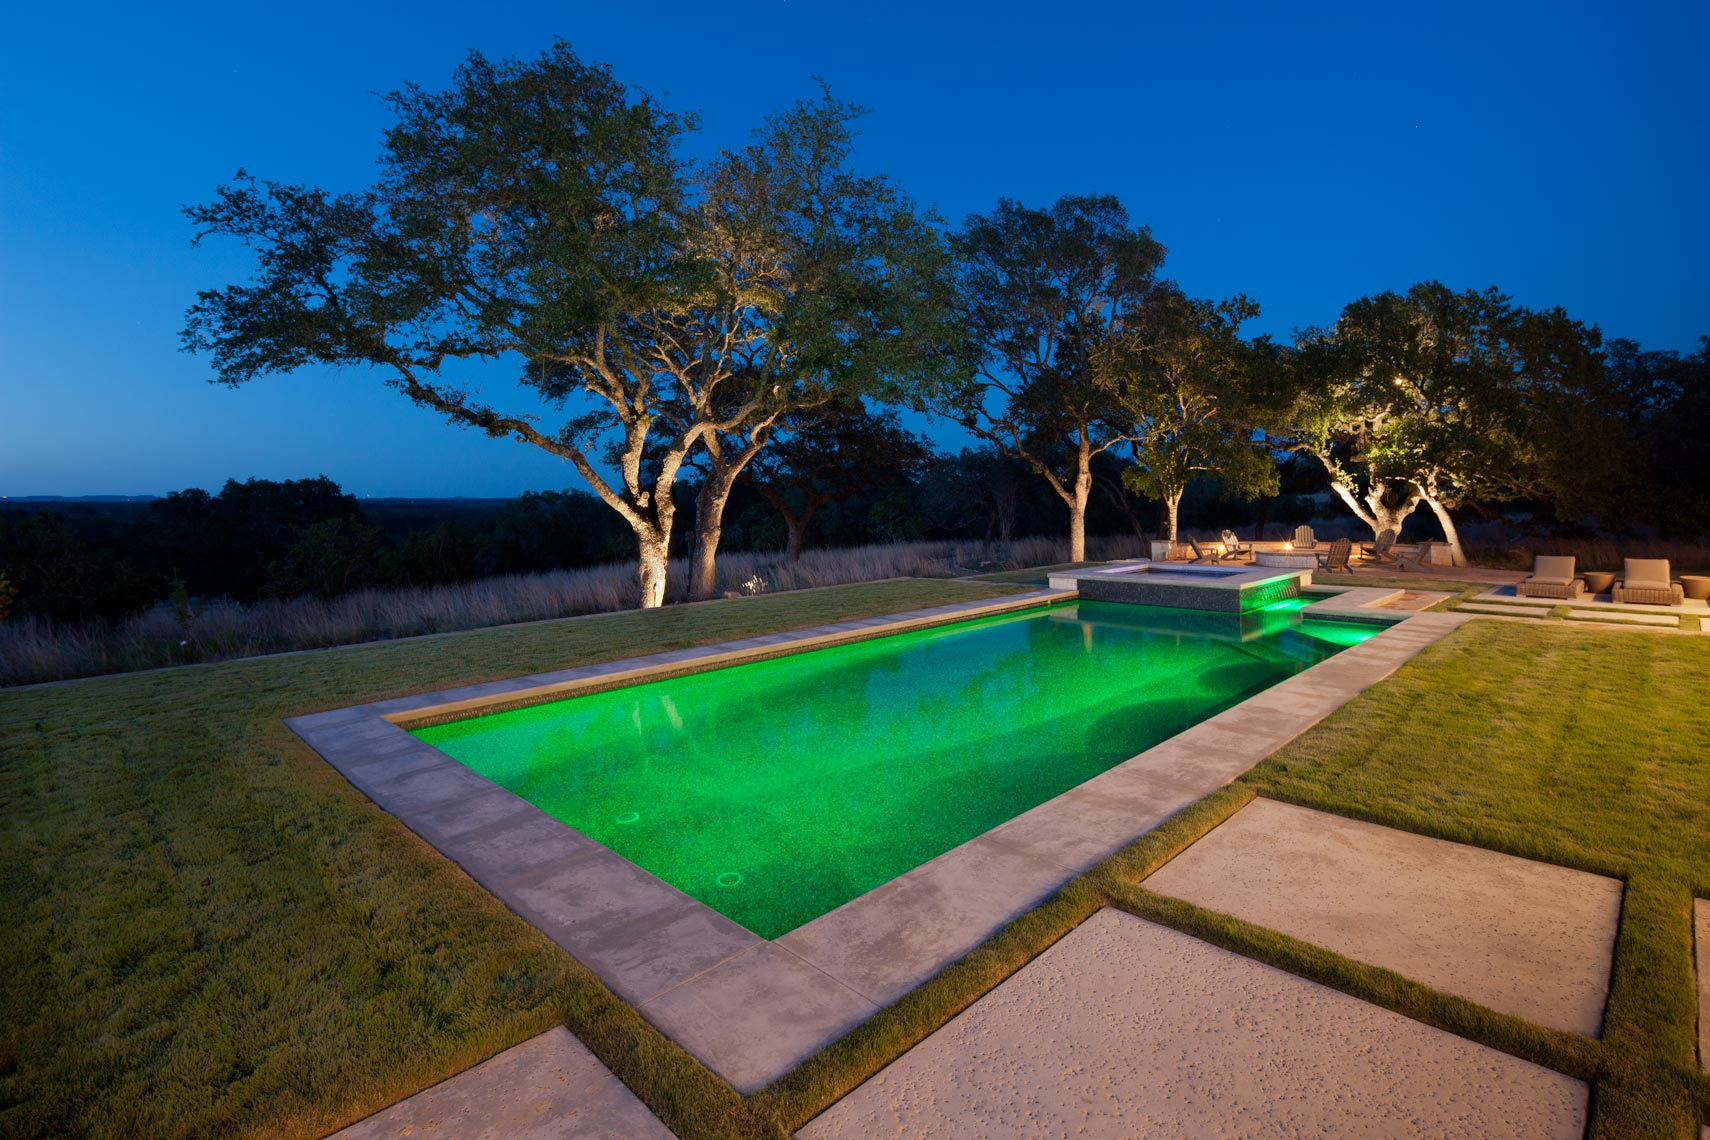 Pool in San Antonio Texas shot for Dynamic Environments/John Hackett.